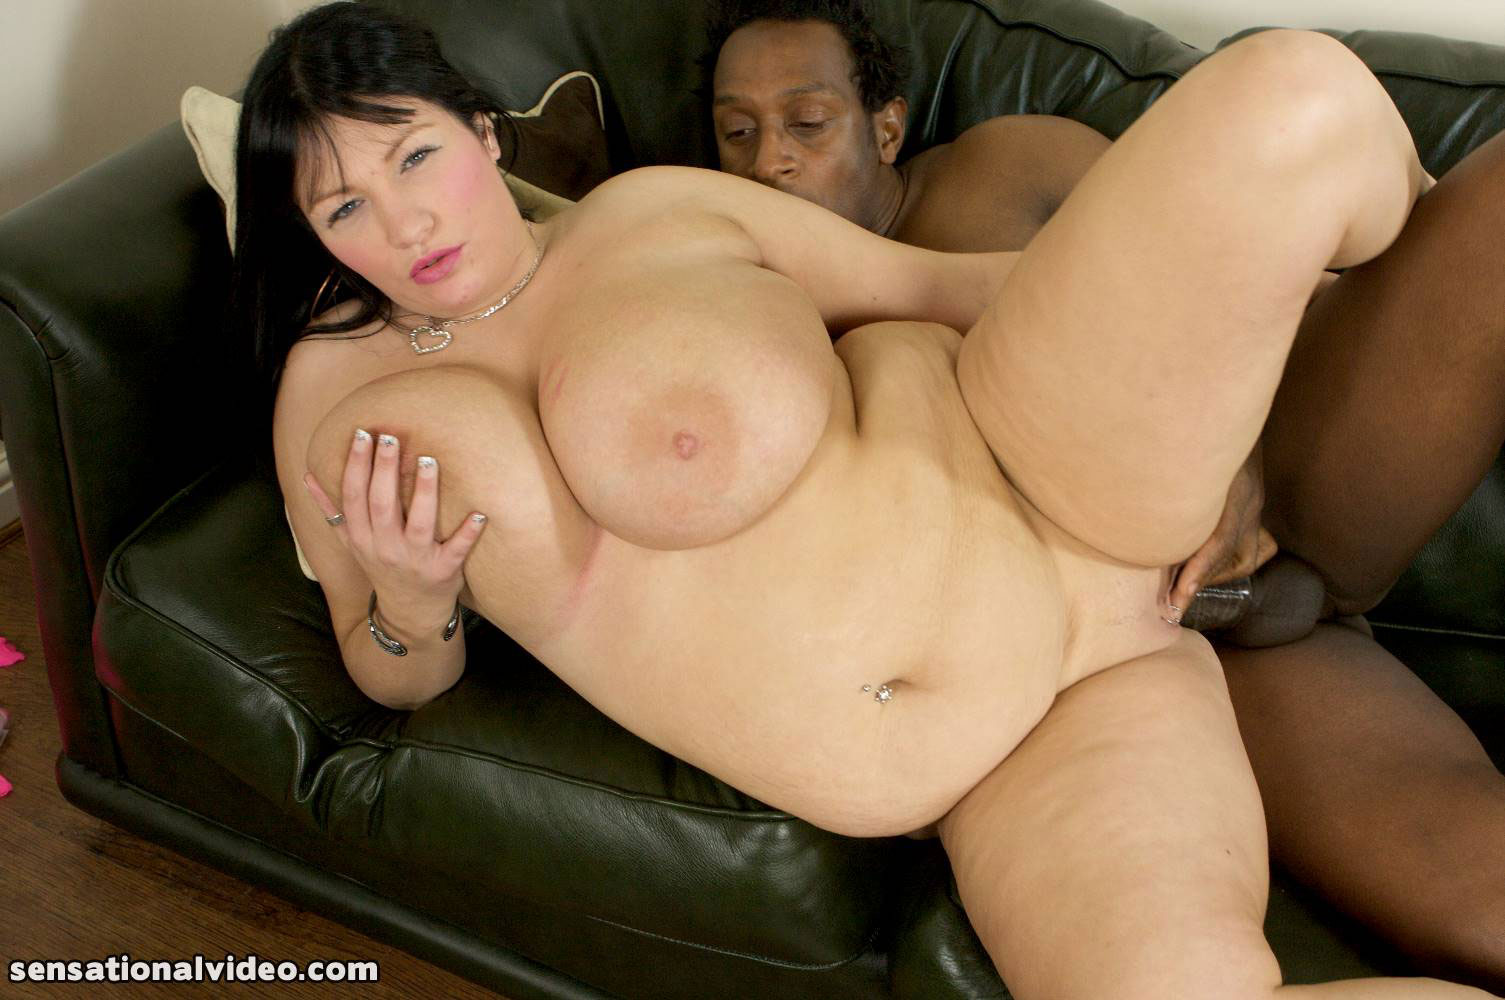 Fat womans fucking sexy download hentay pictures